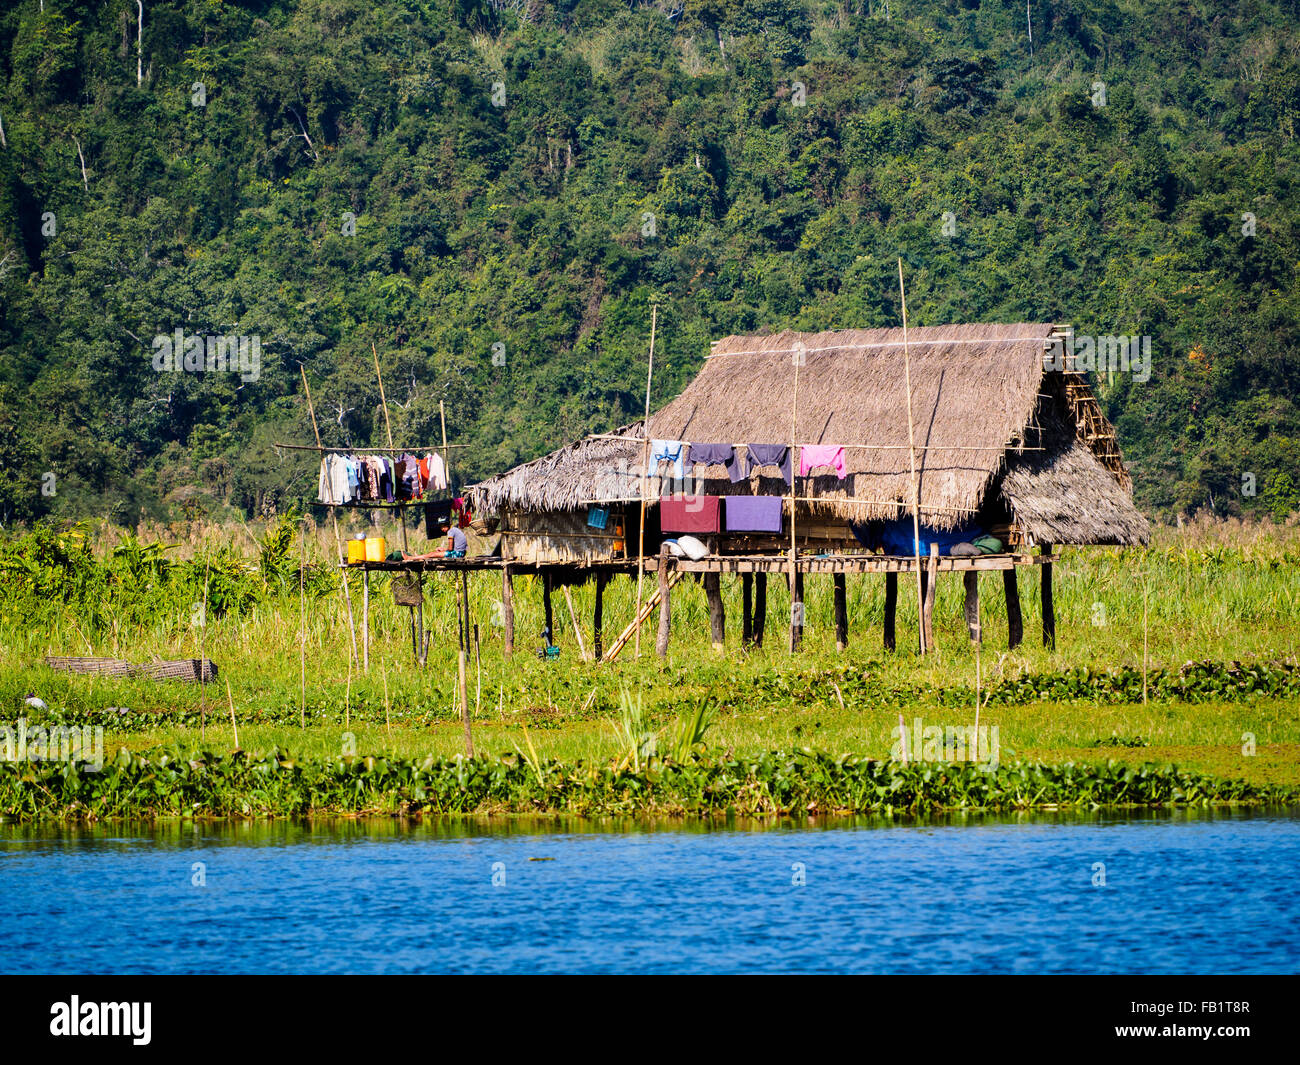 A Small Wooden Hut On The Bank Of Indawgyi Lake.